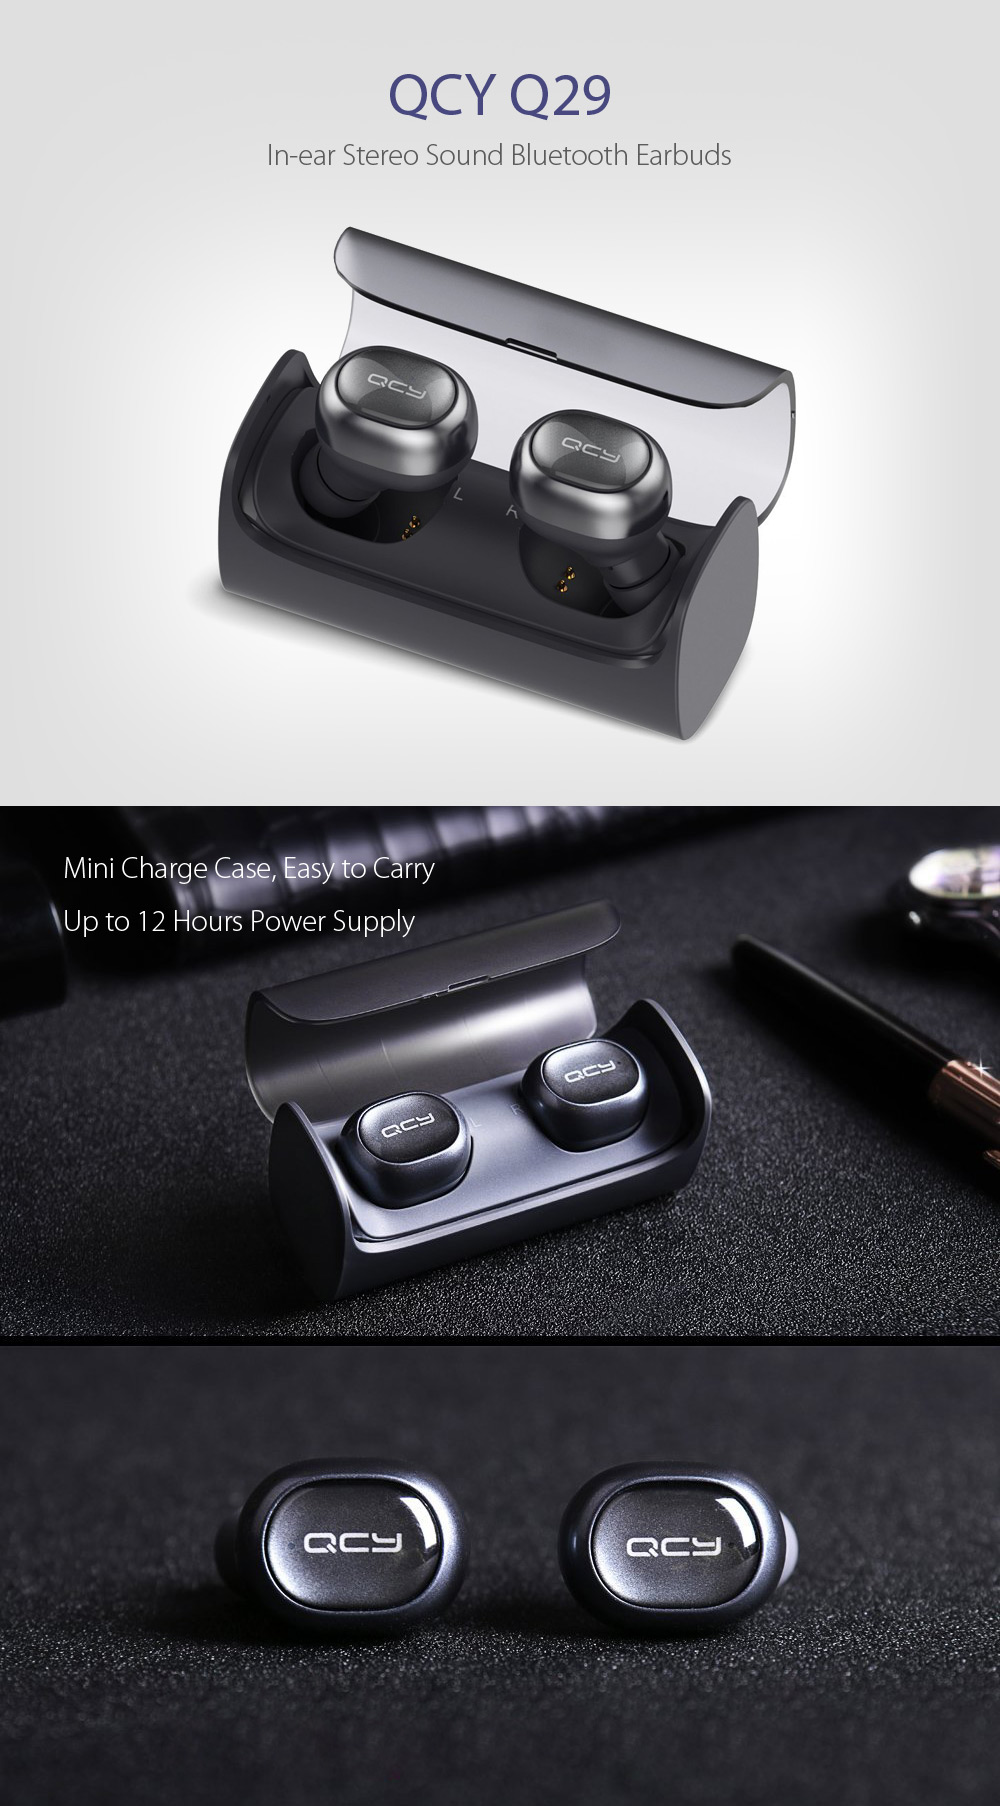 QCY Q29 In-ear Stereo Sound Bluetooth Earphones